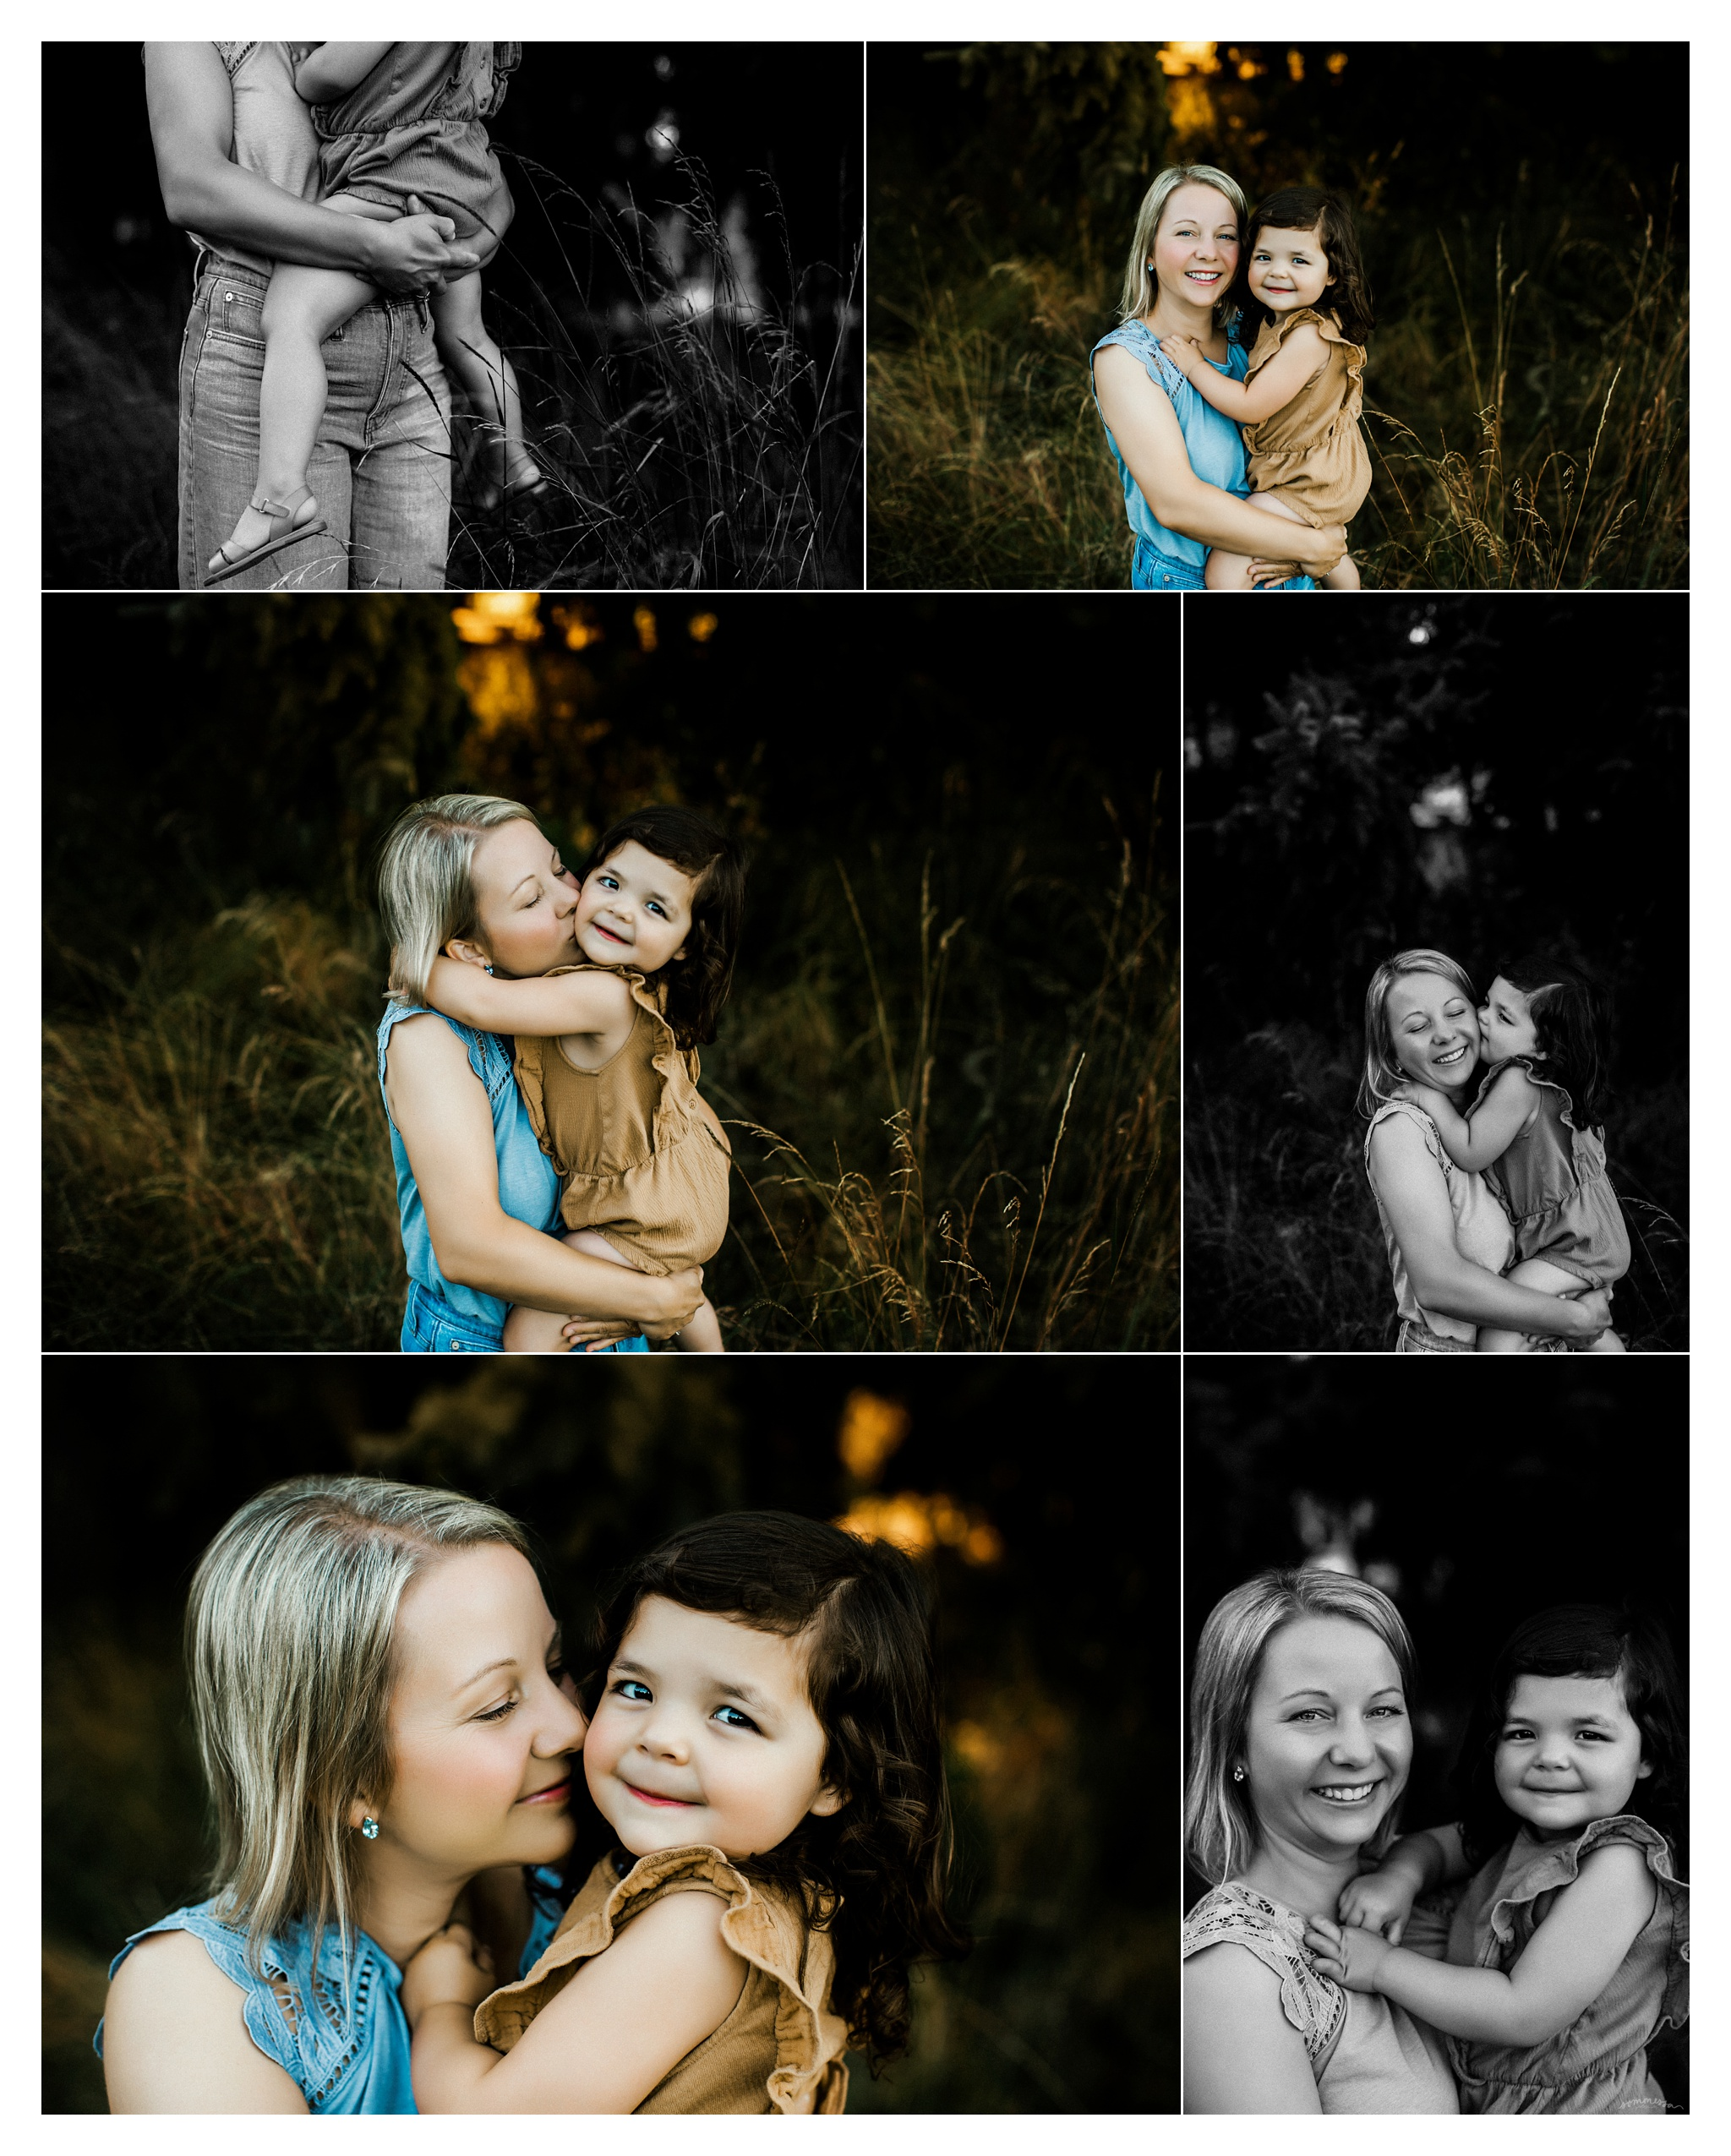 Mother Daughter Family Photography Portland, Oregon_3305.jpg